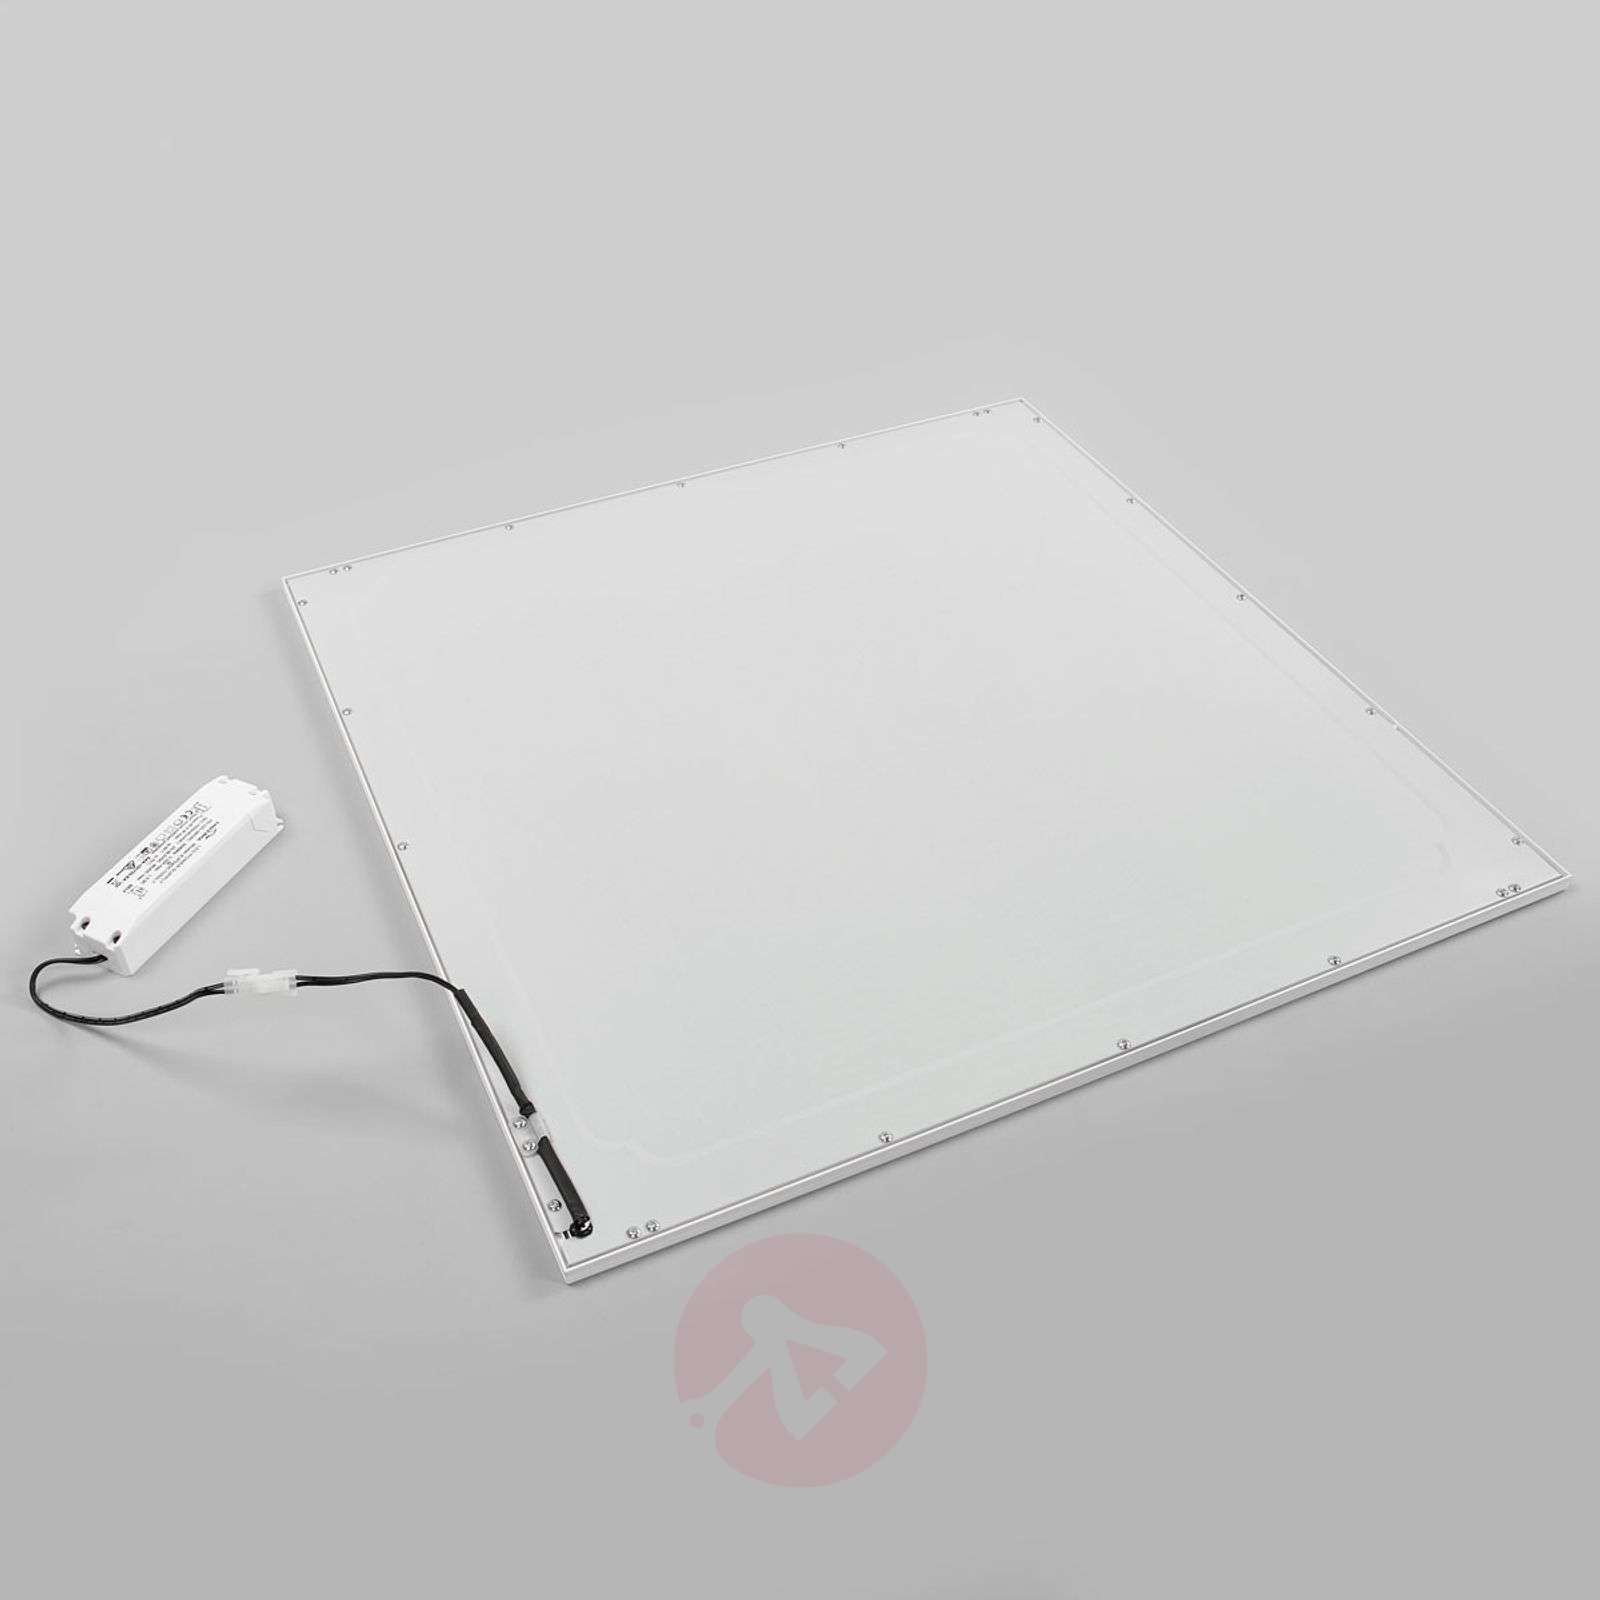 Cool white LED panel Vinas, 62 cm-9978069-028